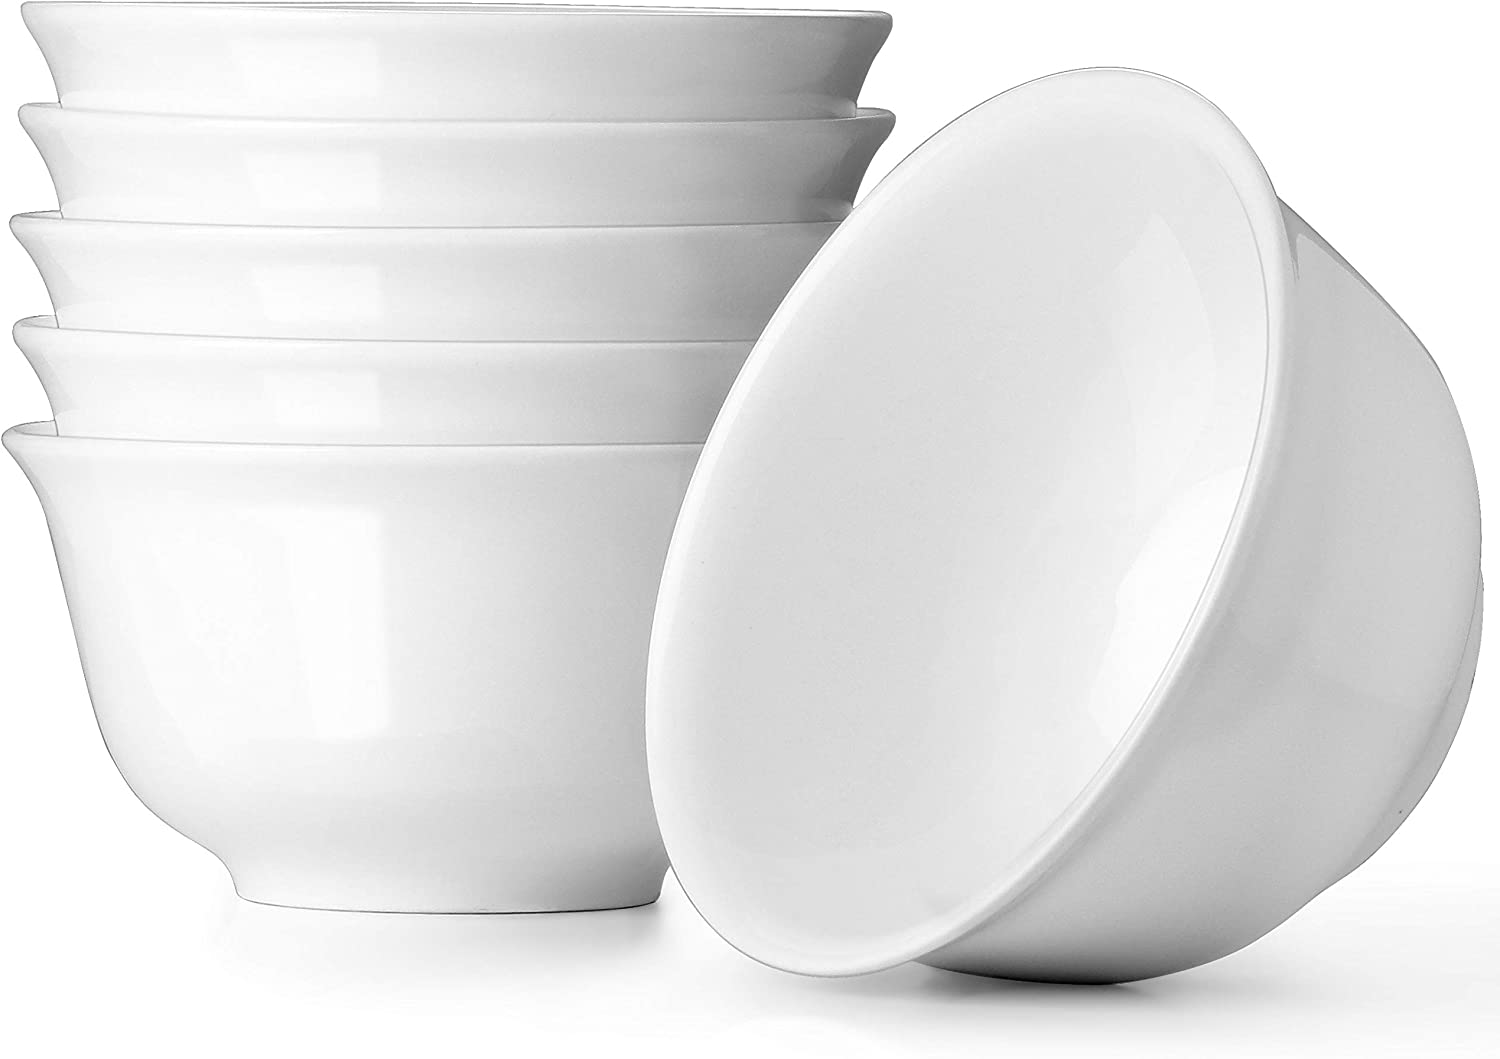 Dowan 7 Serving Bowls 36 Oz Deep Soup Bowls For Kitchen White Bowls For Soup Cereal Ramen Stews Salads Easy To Hold With Flared Edge Dishwasher Microwave Safe Bowls Set